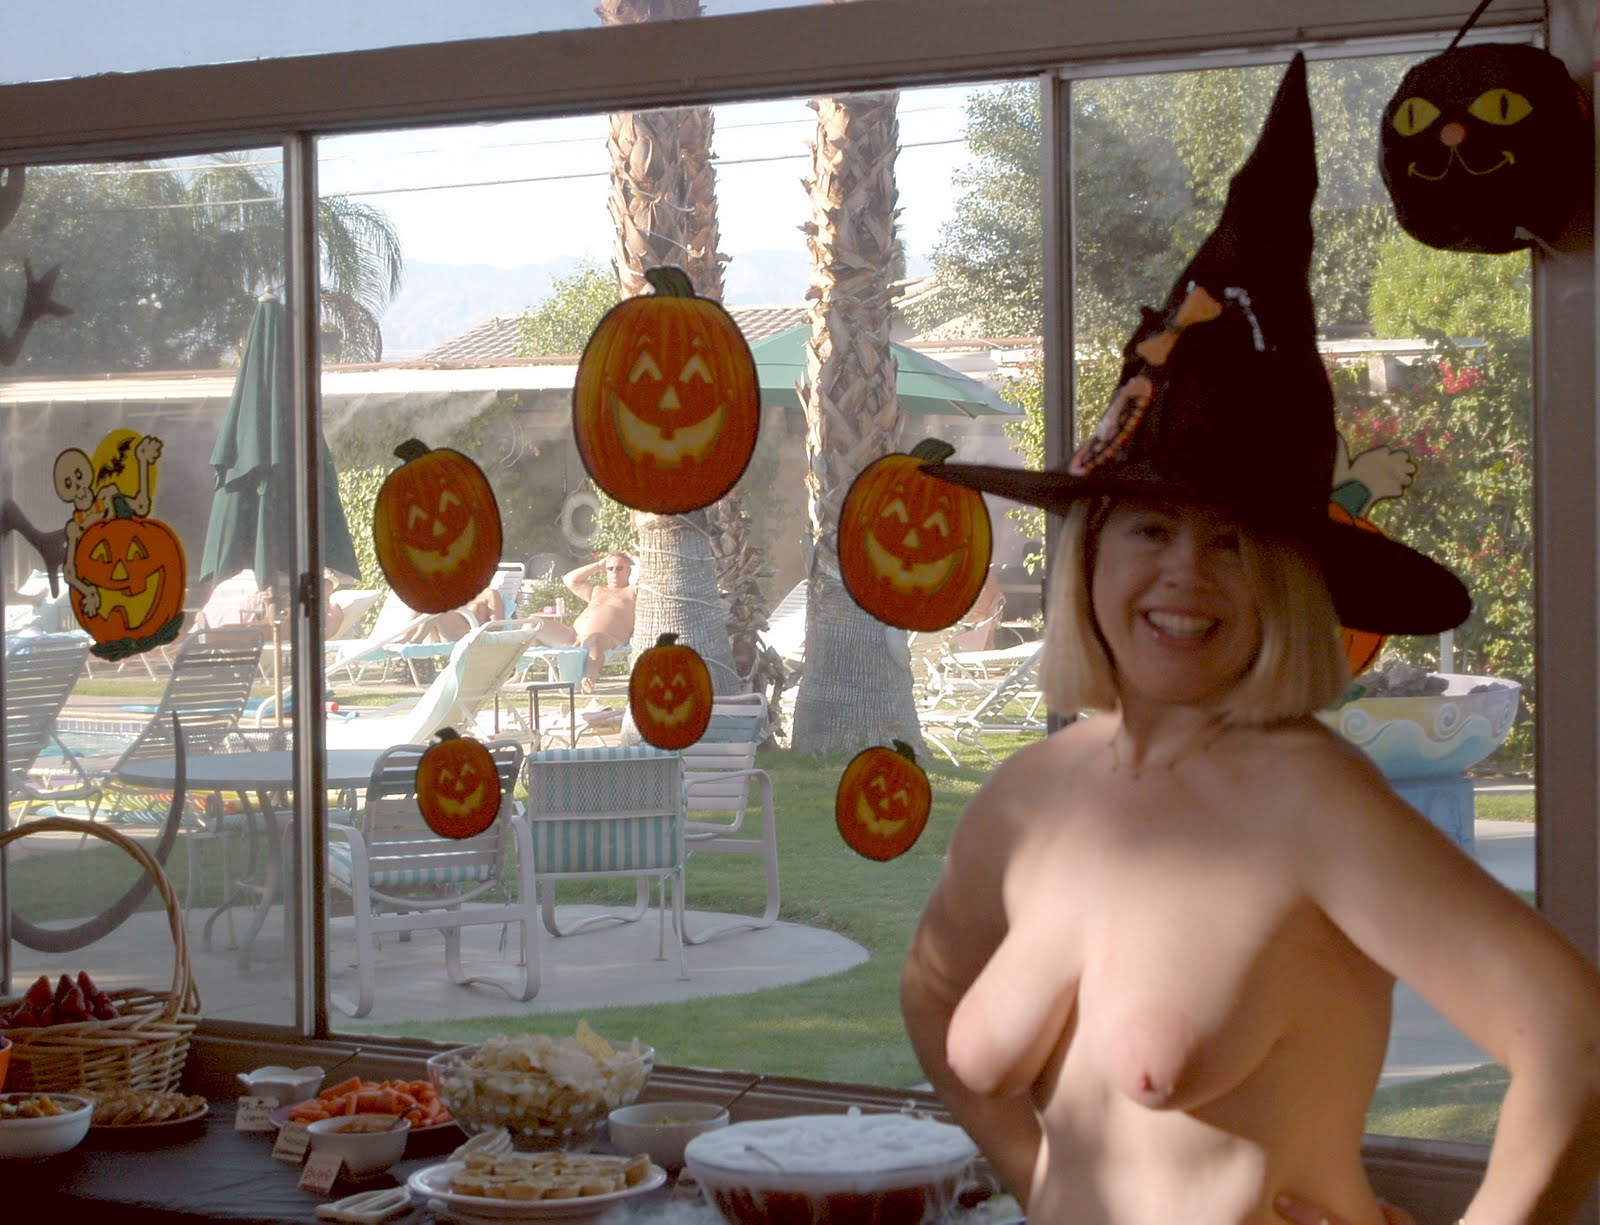 Palm Springs, California is Nude Halloween Party central.